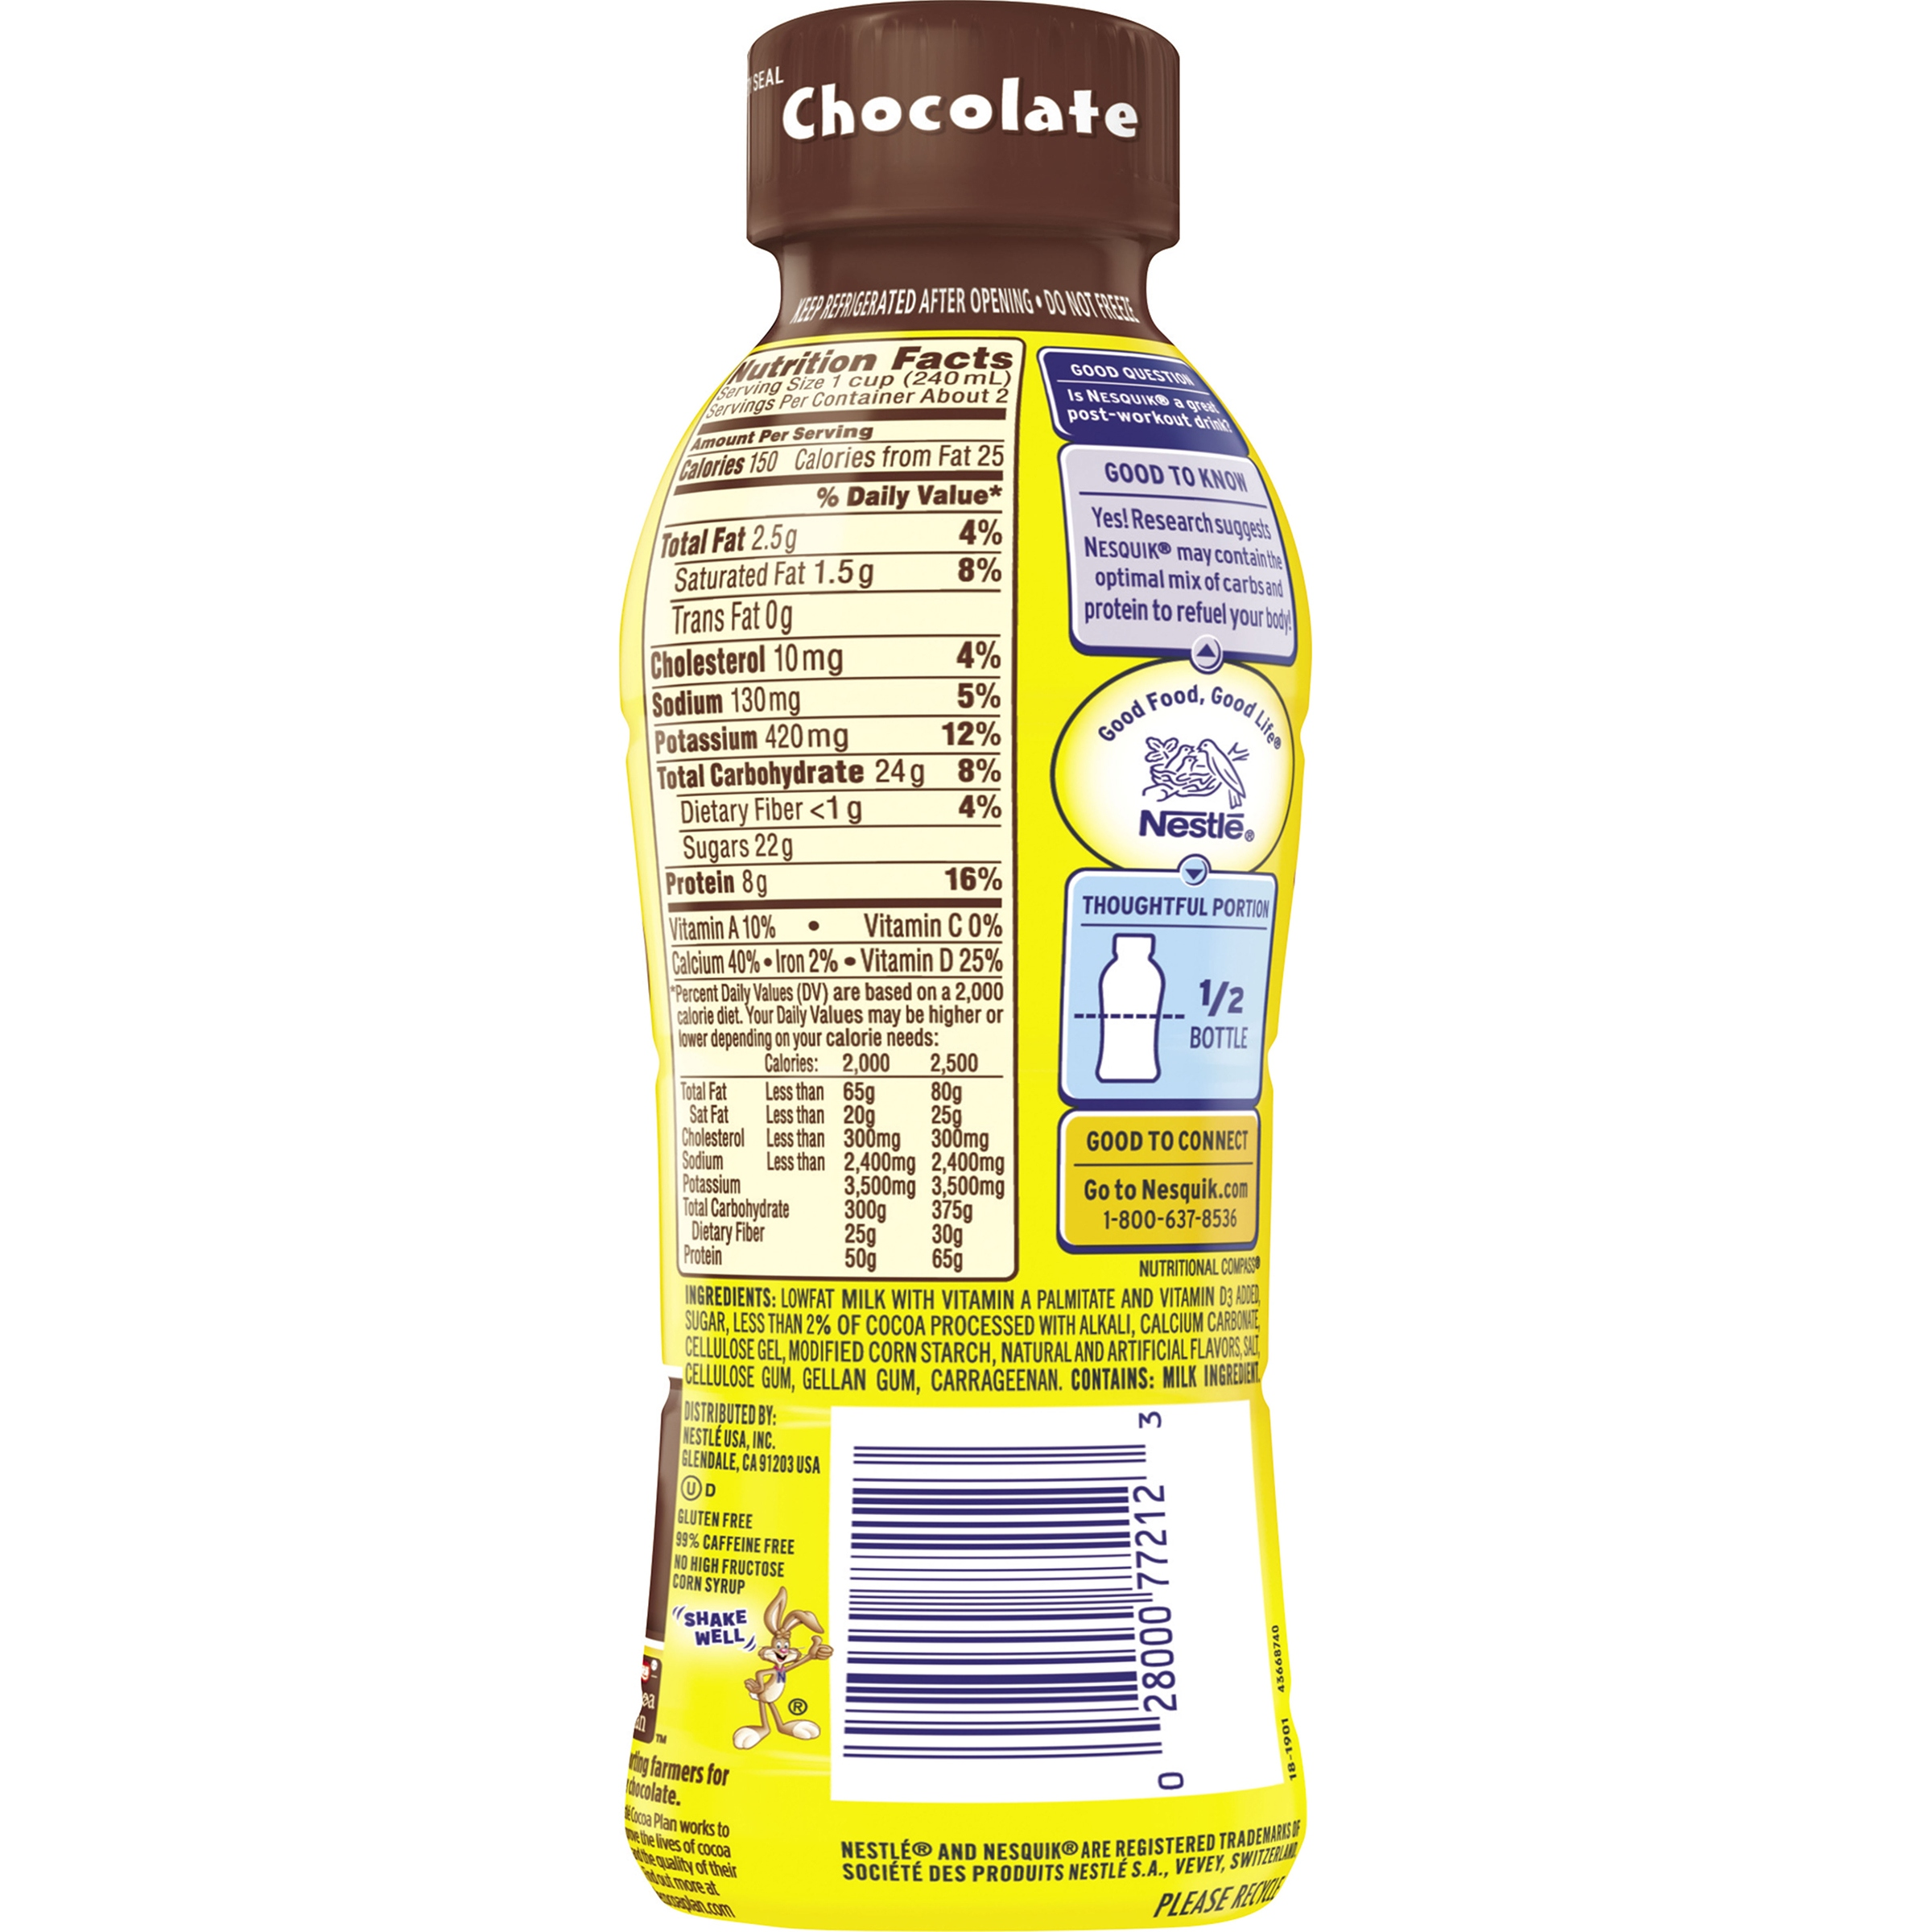 Nesquik chocolate milk nutrition facts